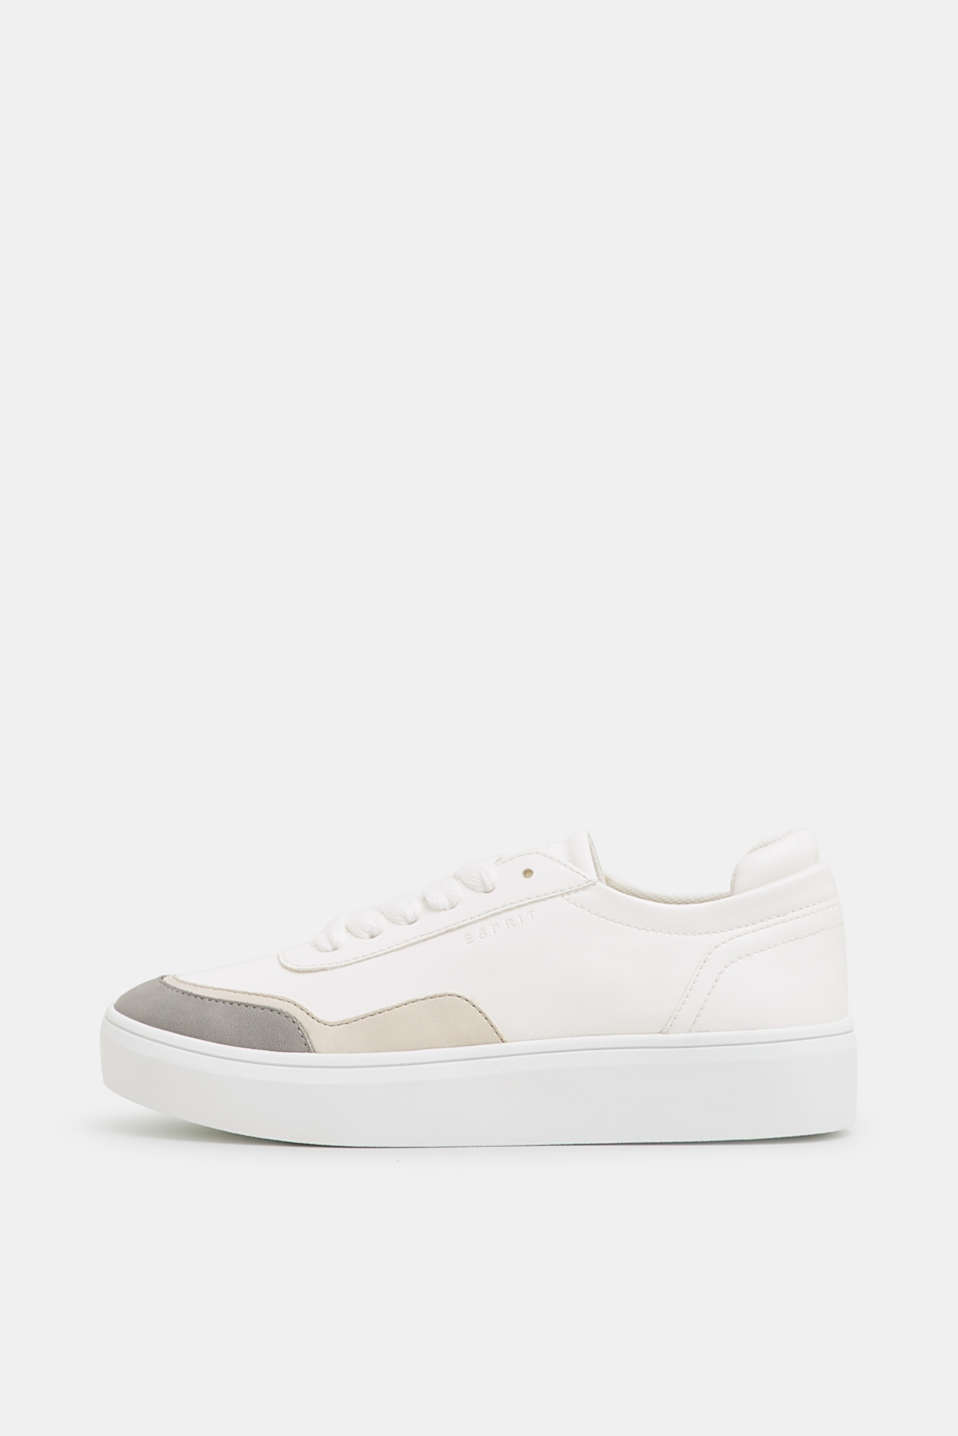 Trendy, faux leather trainers